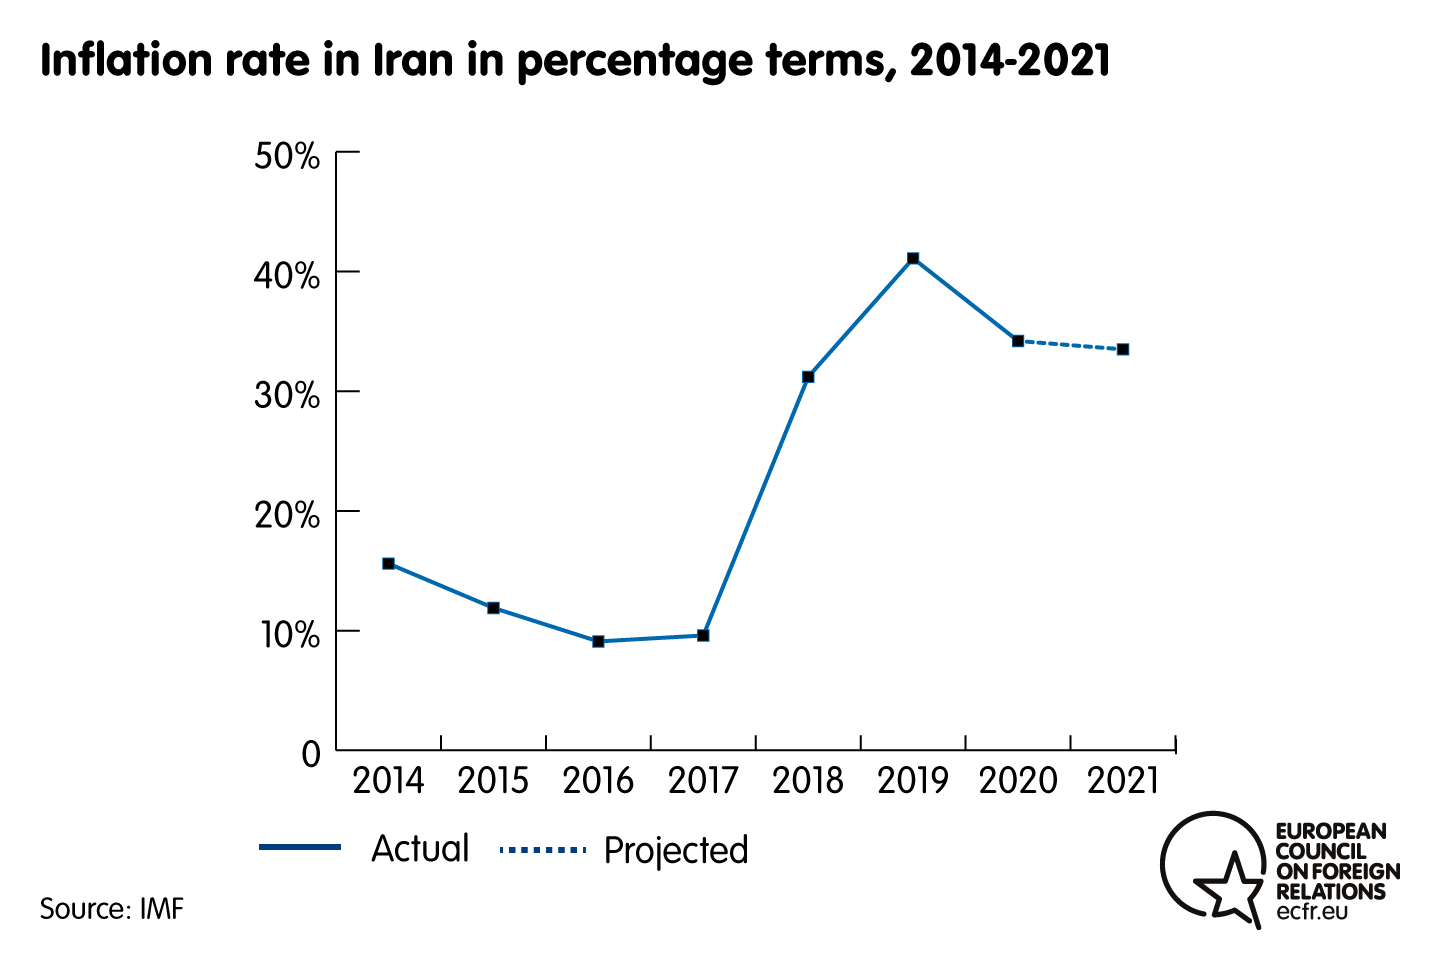 Chart of the inflation rate in Iran in percentage terms, 2014-2021